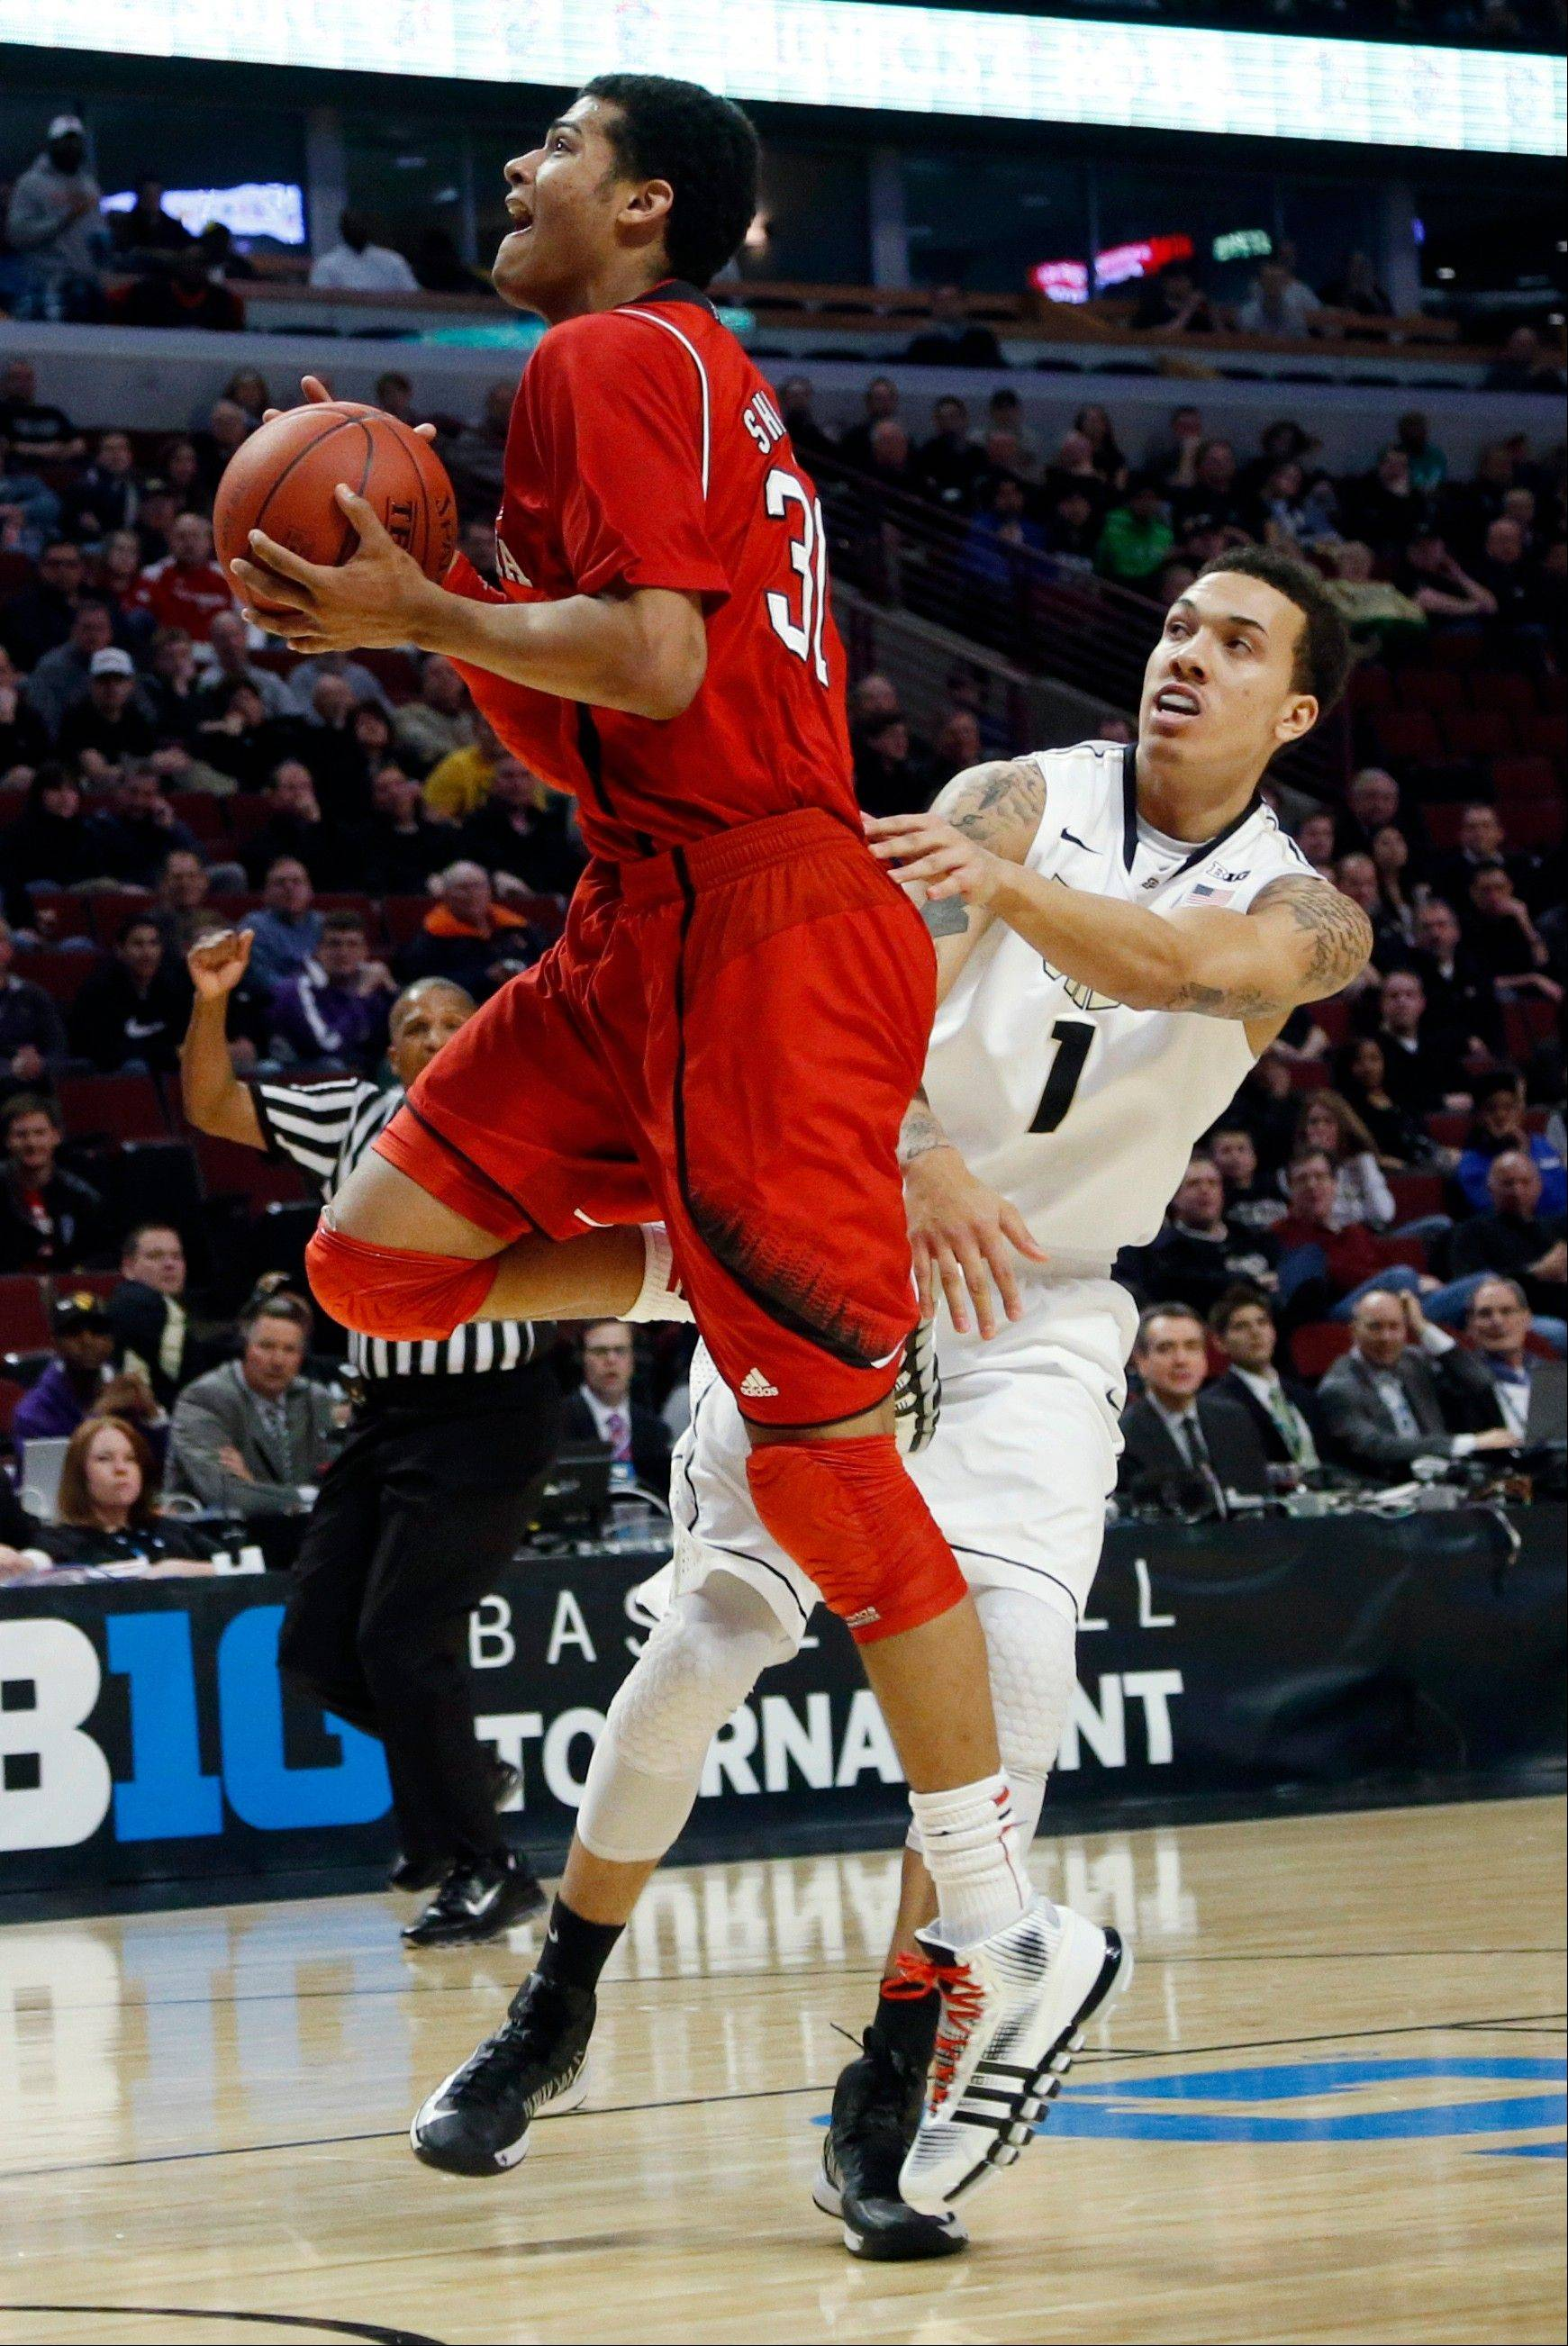 Nebraska's Shavon Shields drives past Purdue's Anthony Johnson (1) during the first half of an NCAA college basketball game at the Big Ten tournament Thursday, March 14, 2013, in Chicago. (AP Photo/Charles Rex Arbogast)